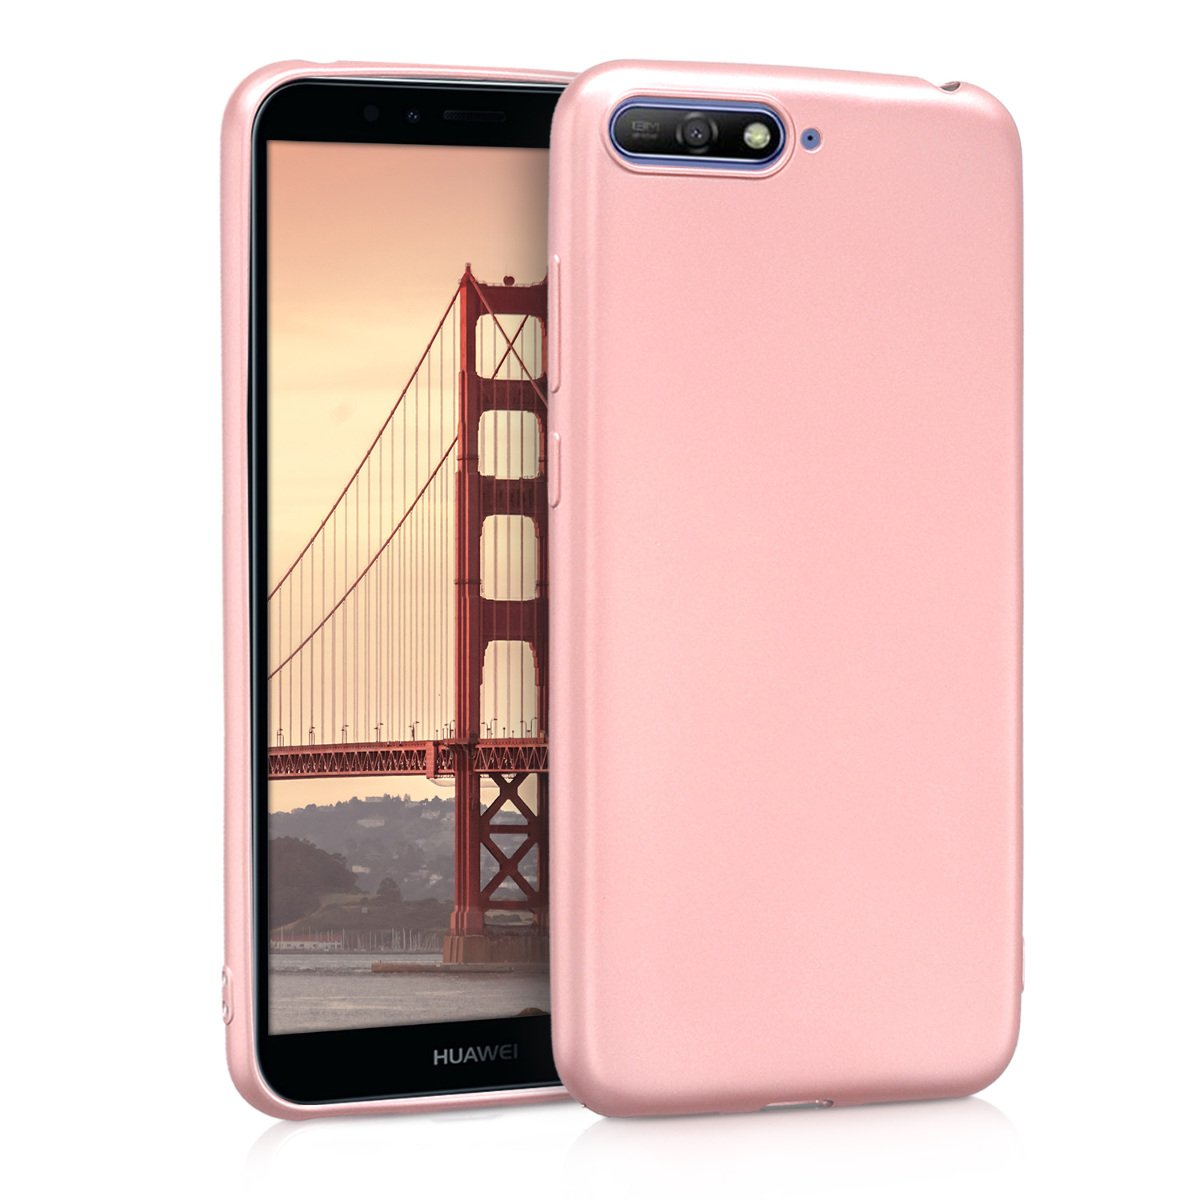 kwmobile TPU Silicone Case for Huawei Y6 (2018) - Soft Flexible Shock Absorbent Protective Phone Cover - Metallic Rose Gold